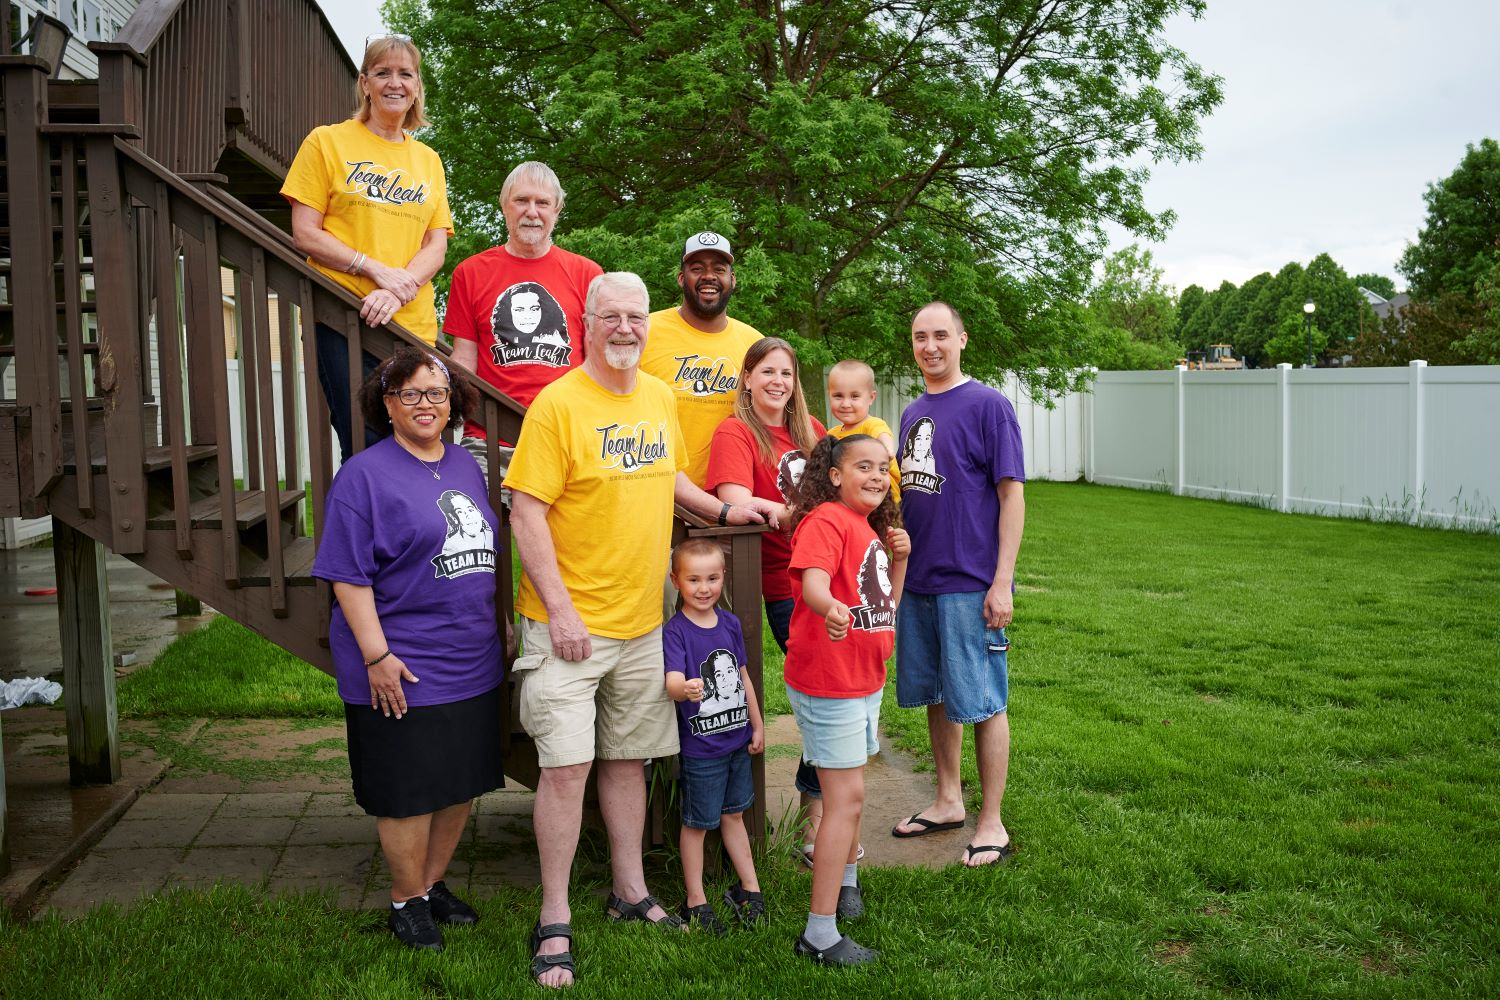 A family wearing brightly colored shirts groups together in their backyard for a team photo